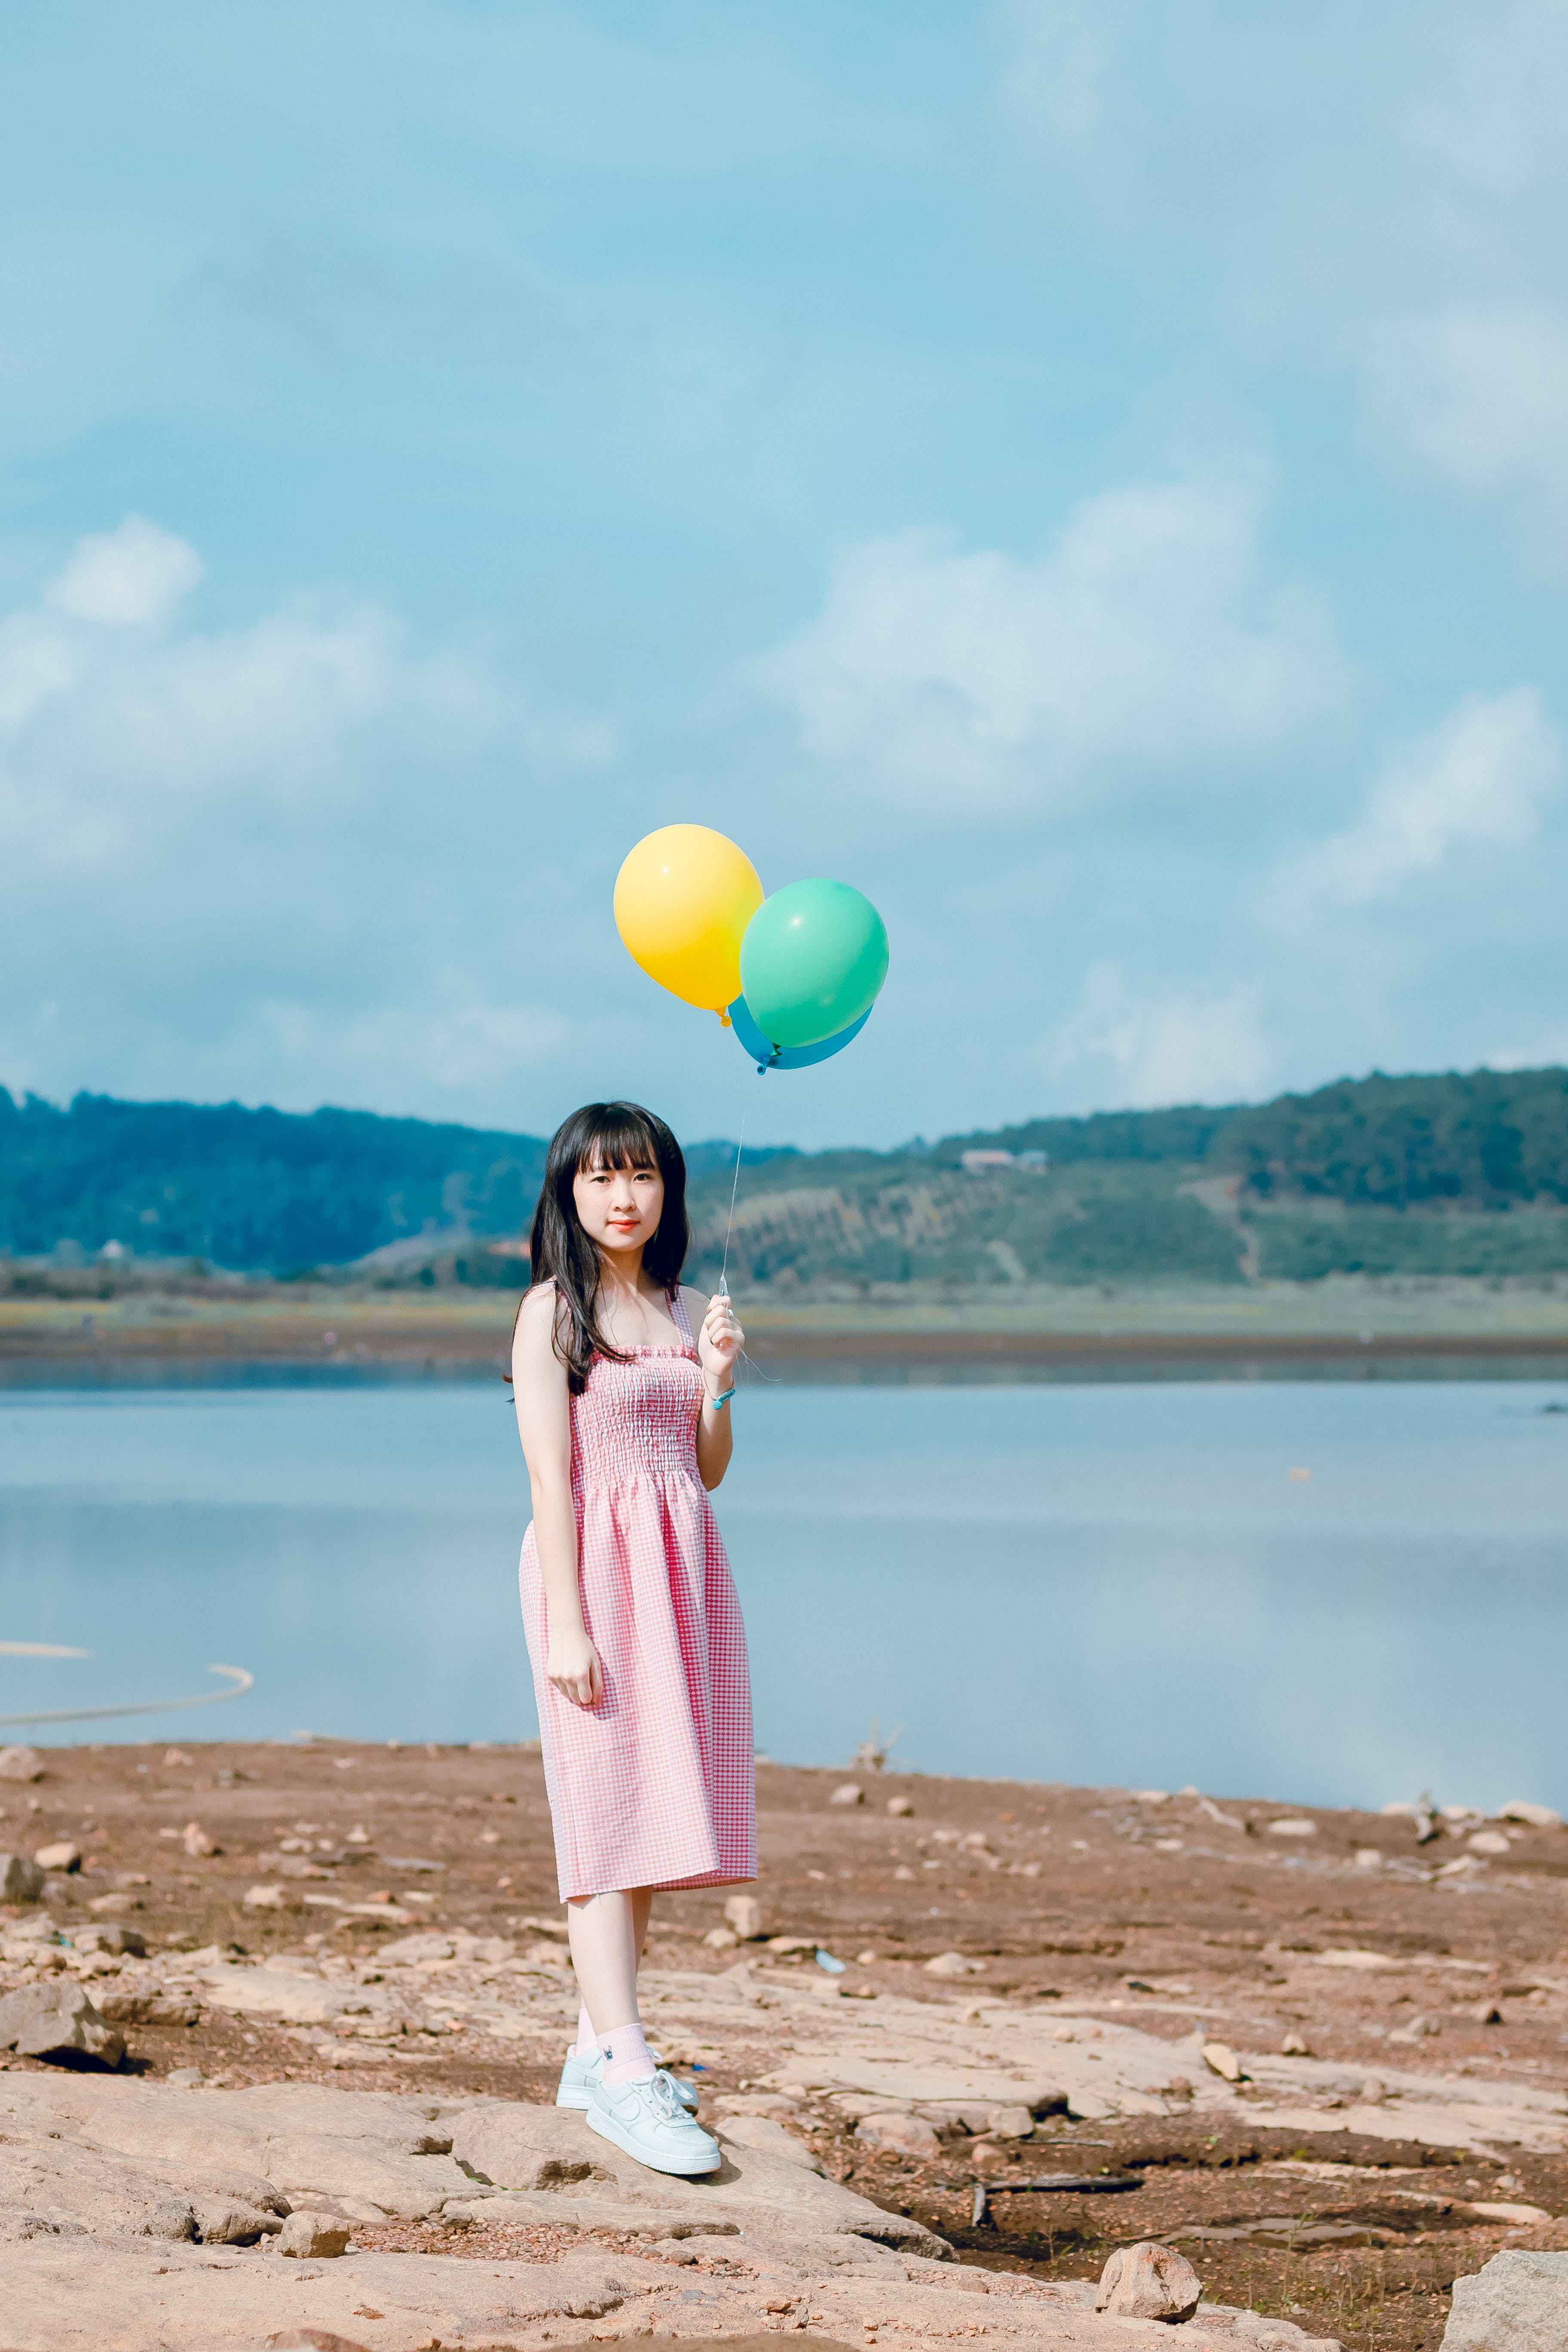 Woman Holding Balloons Standing on Beige Sand